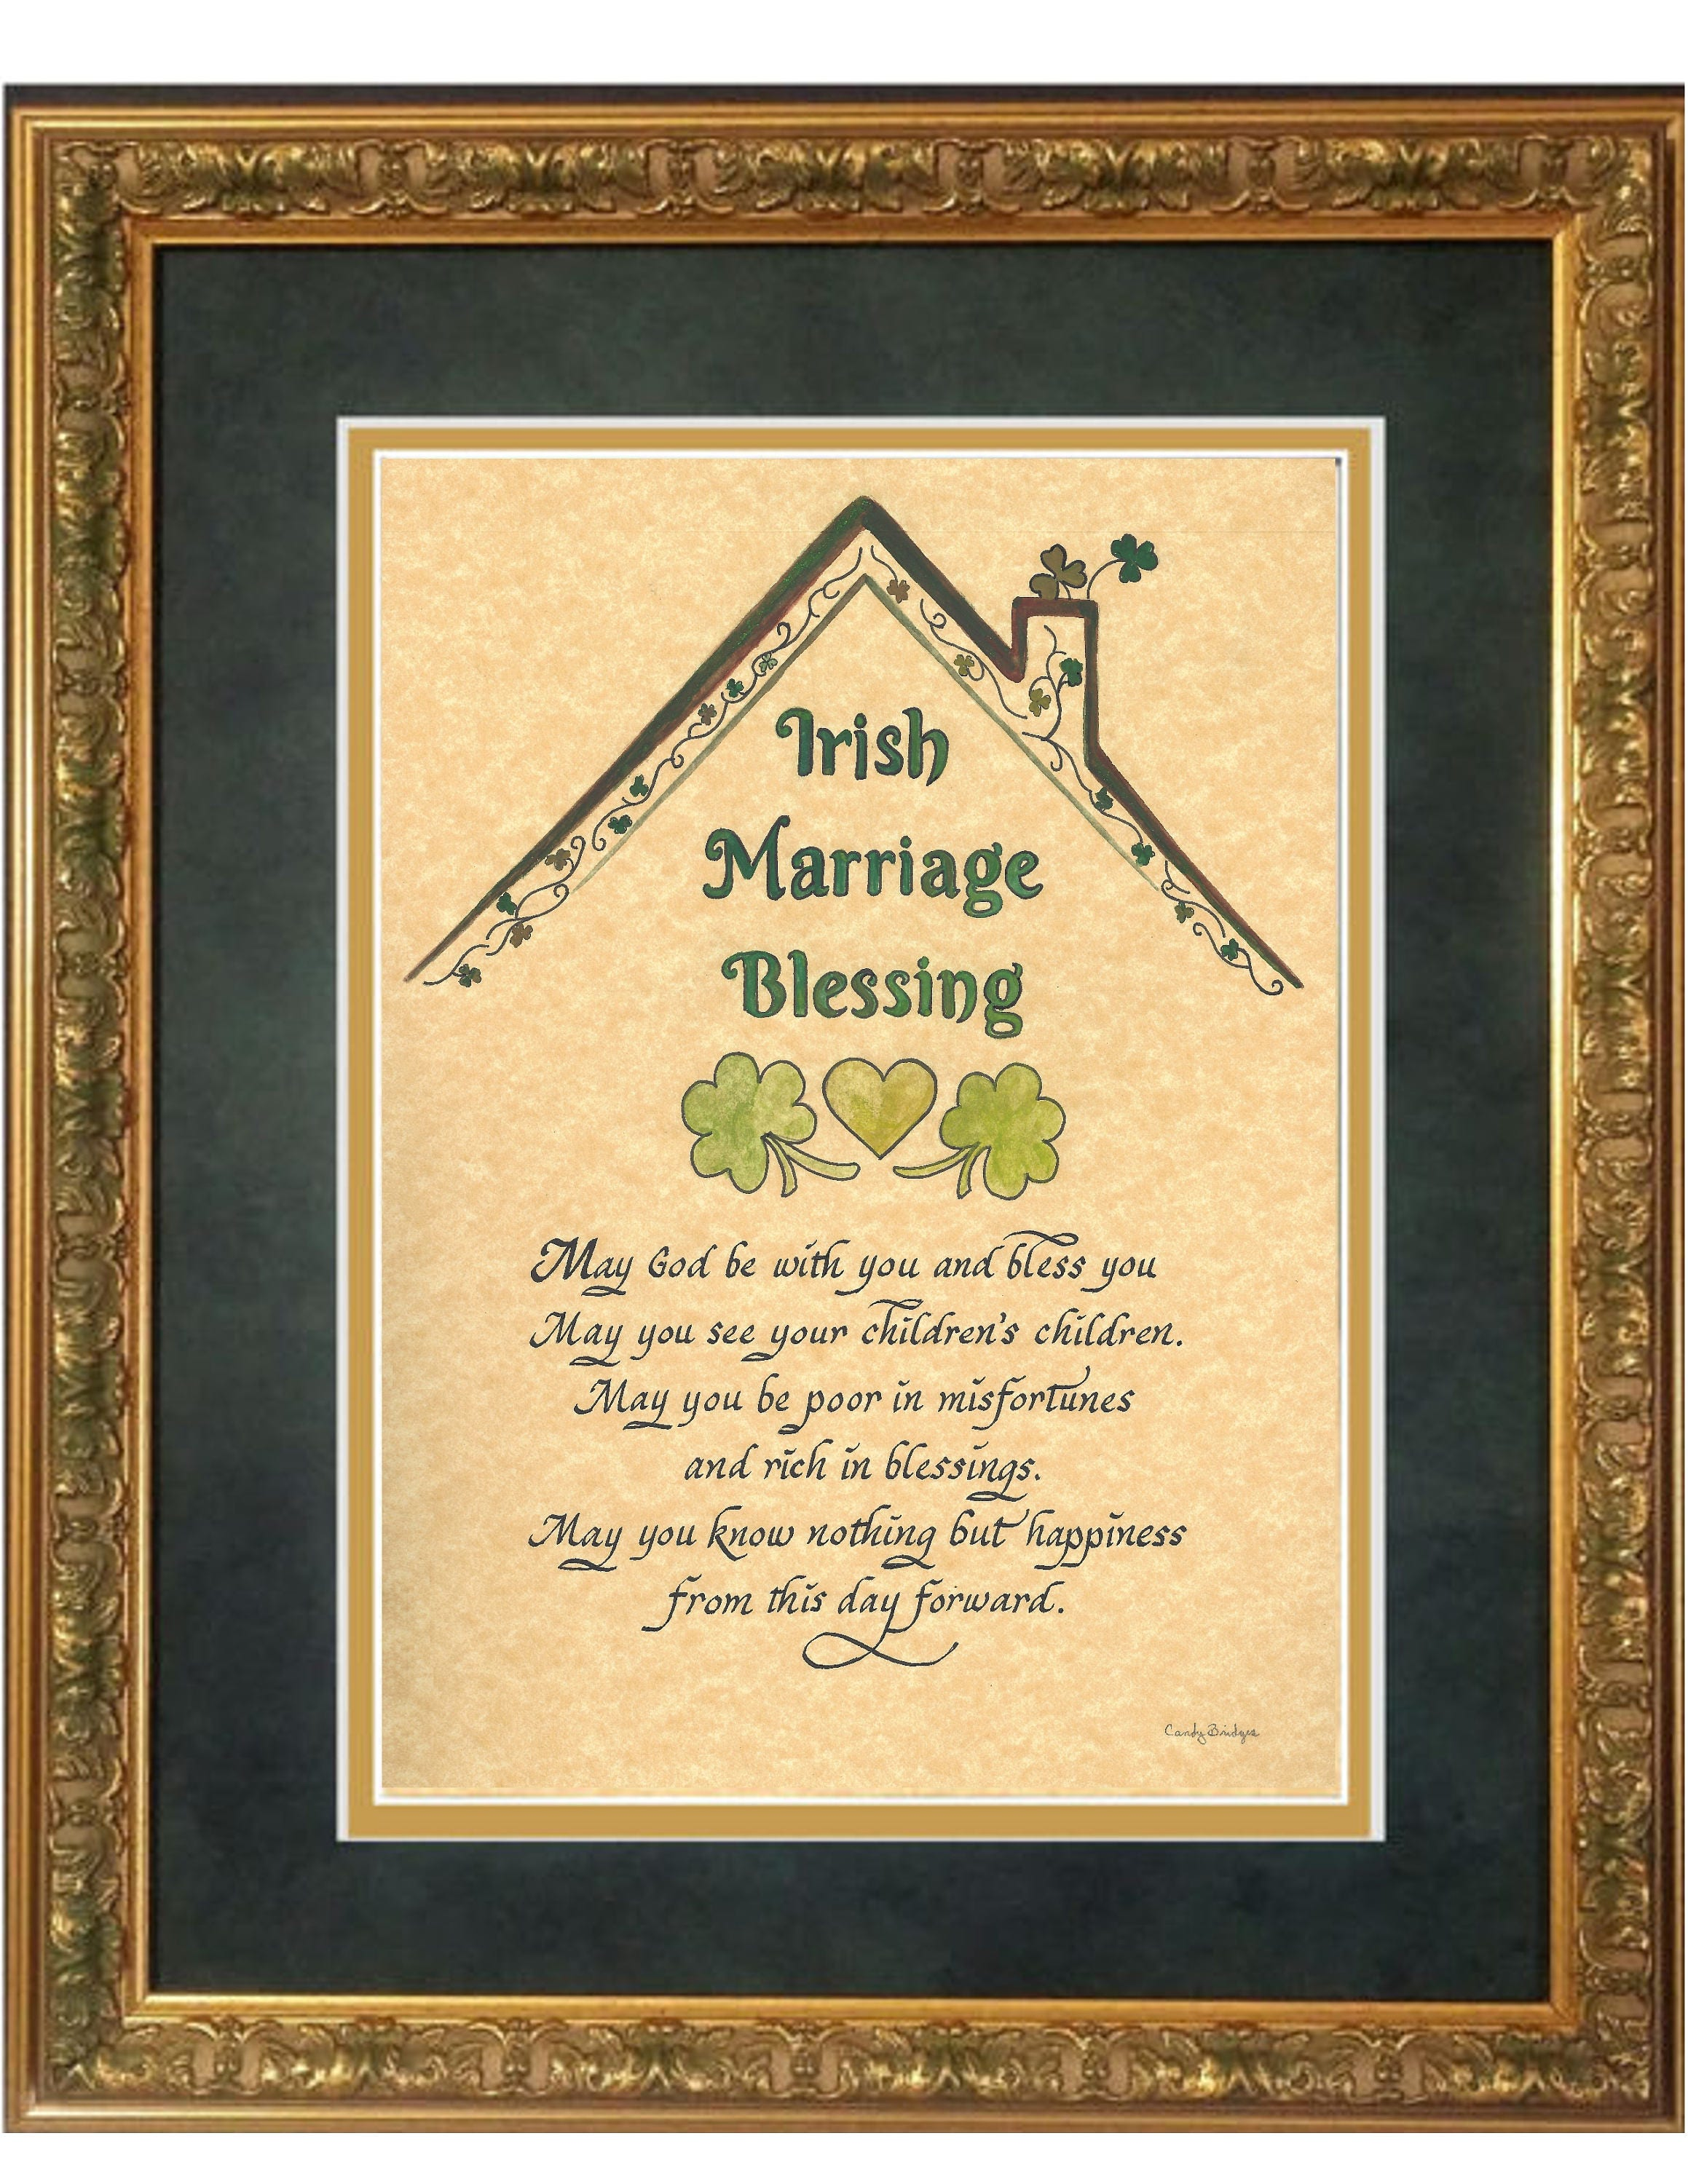 Wedding Gifts For Groom Ireland : Irish Marriage Wedding Blessing for Bride and Groom with shamrocks and ...